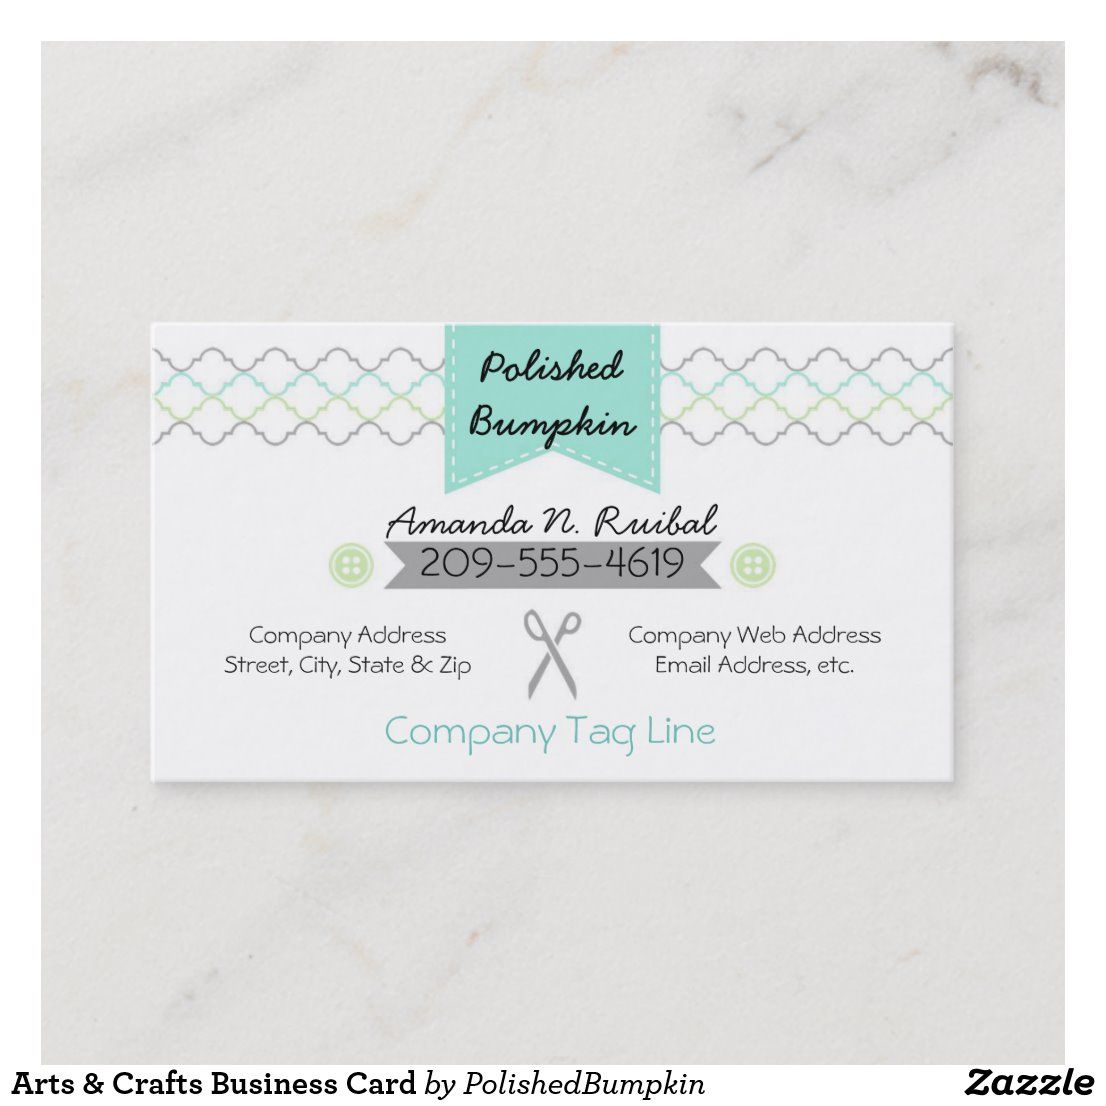 Arts crafts business card with images